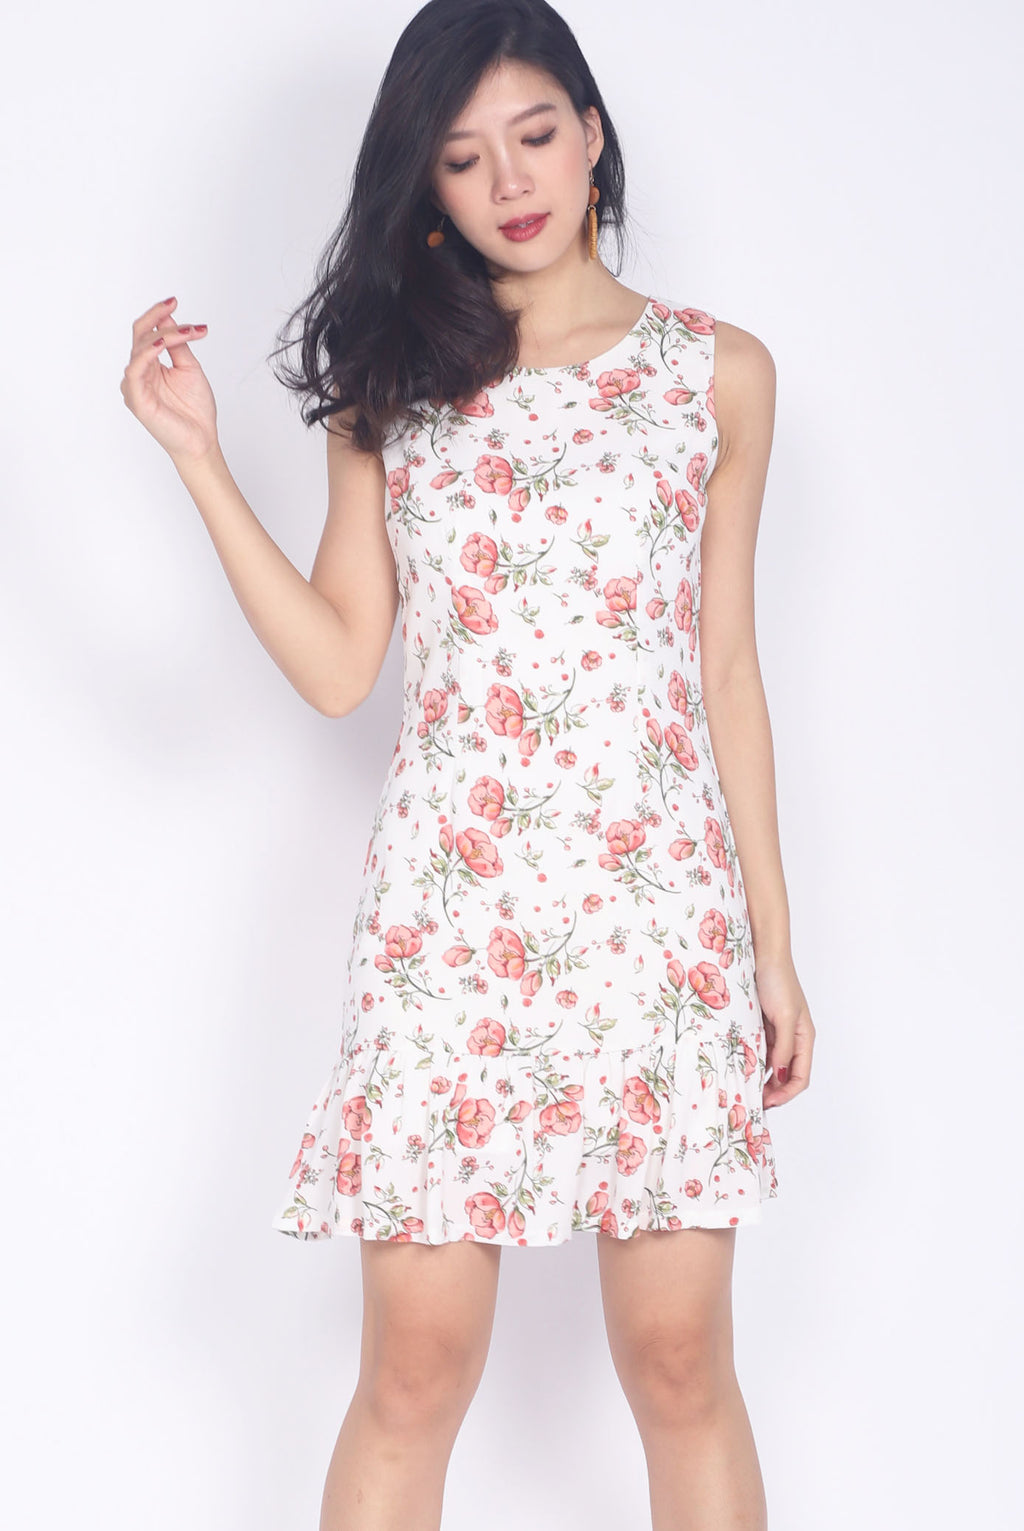 Horatia Red Floral Drop Hem Dress In White